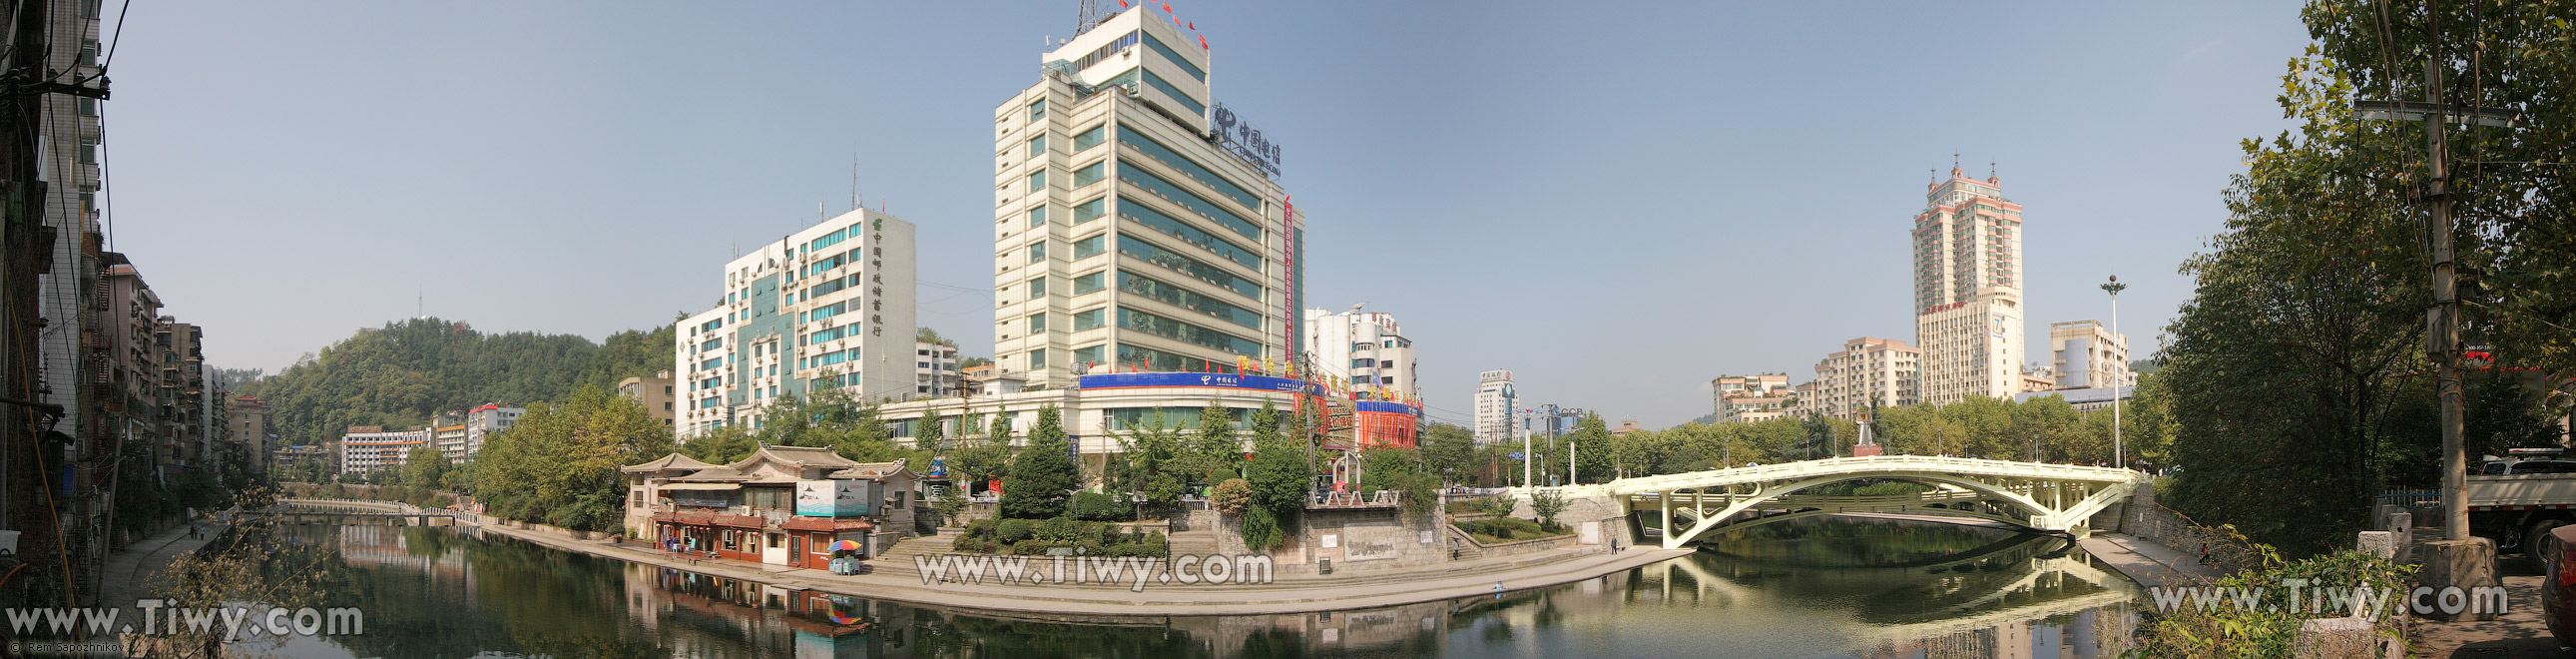 Zunyi China  city pictures gallery : Zunyi, Guizhou Province 2011 Travel to the Southwest China